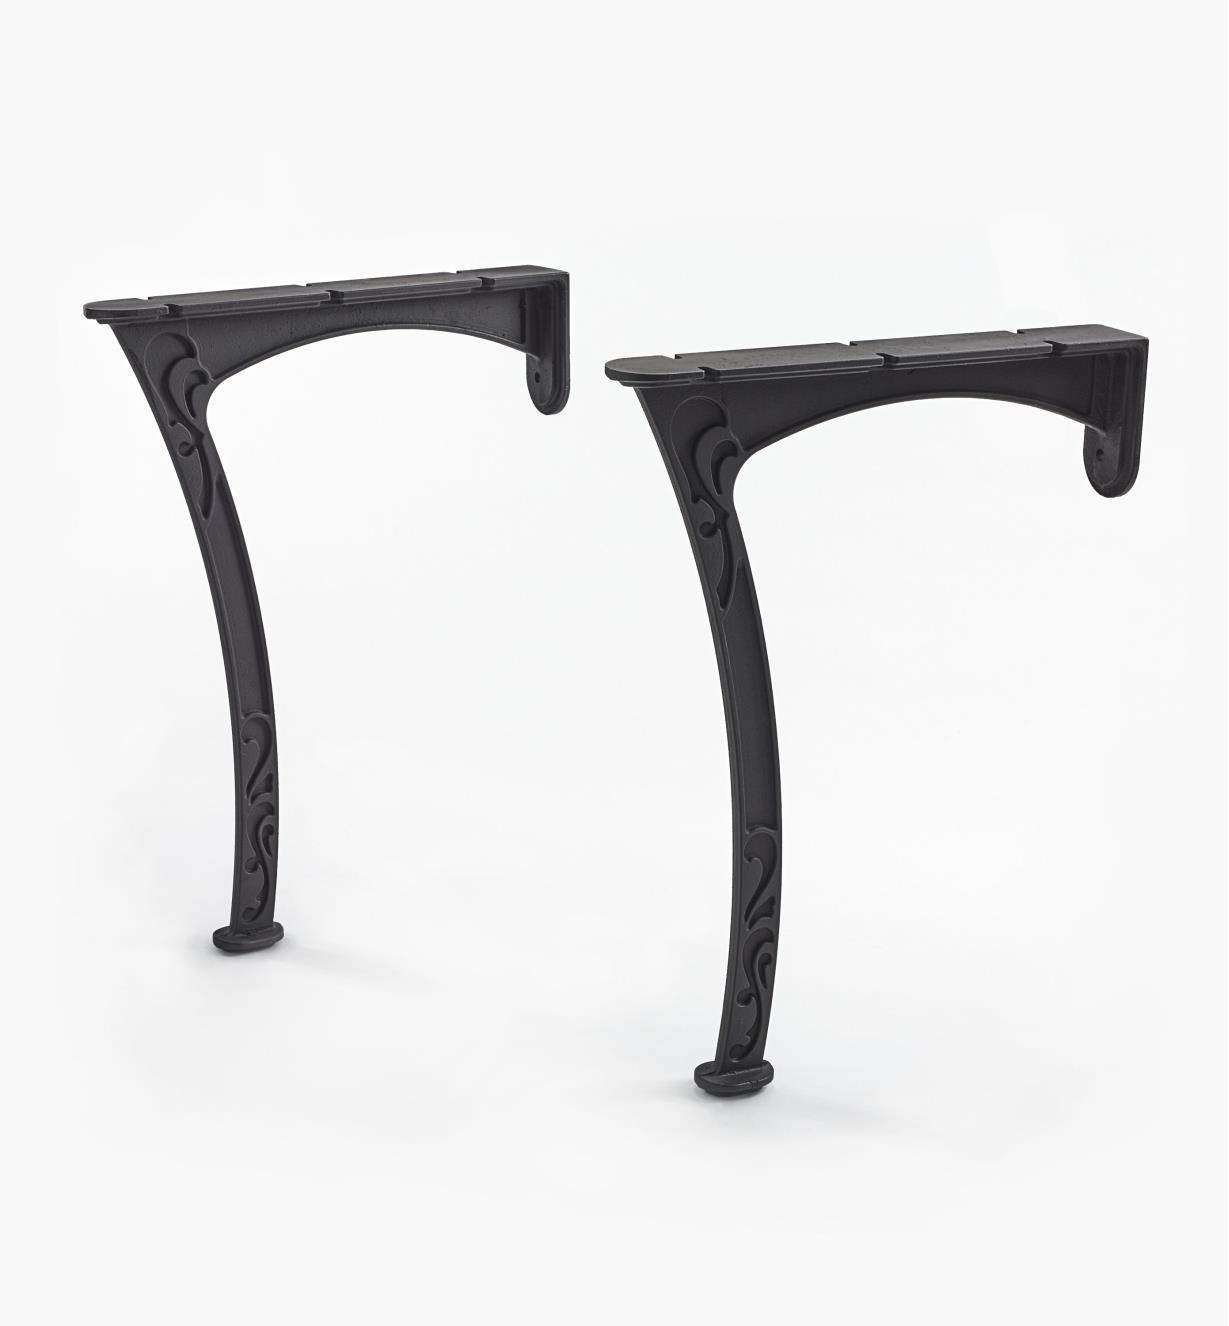 05K4801 - Wall-Mount Table Legs, pr.